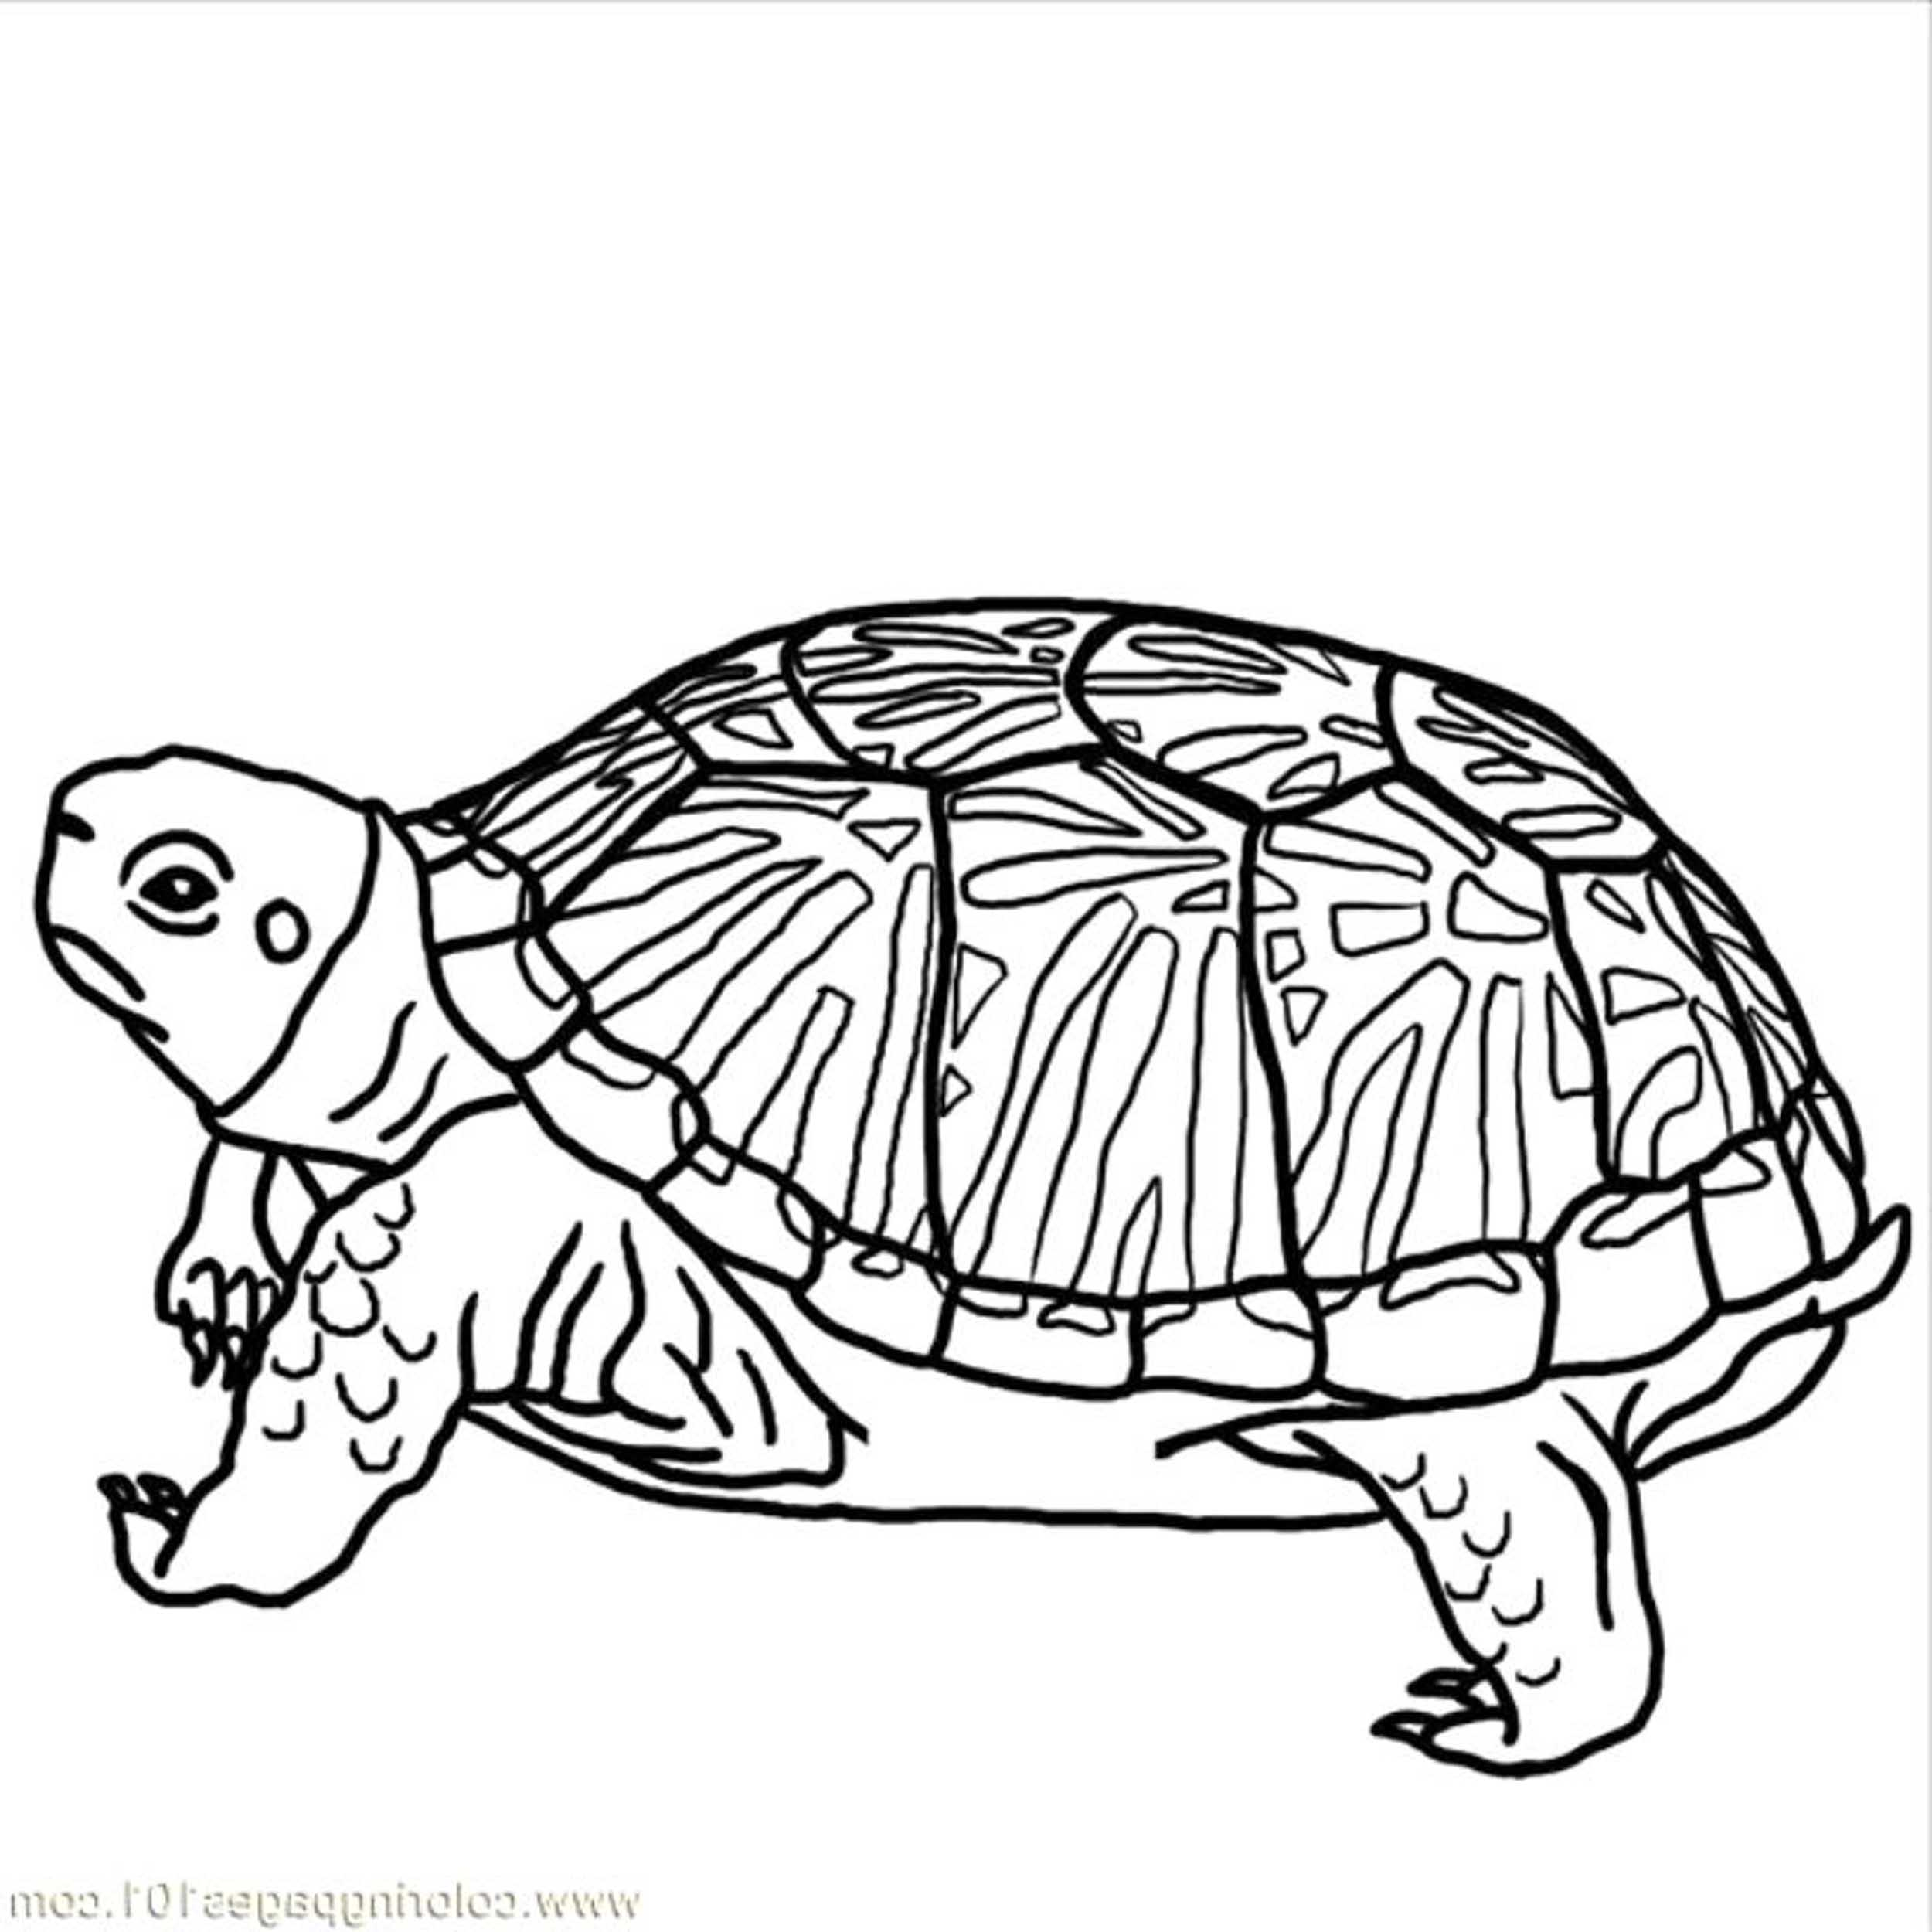 turtle coloring images print download turtle coloring pages as the turtle images coloring 1 2